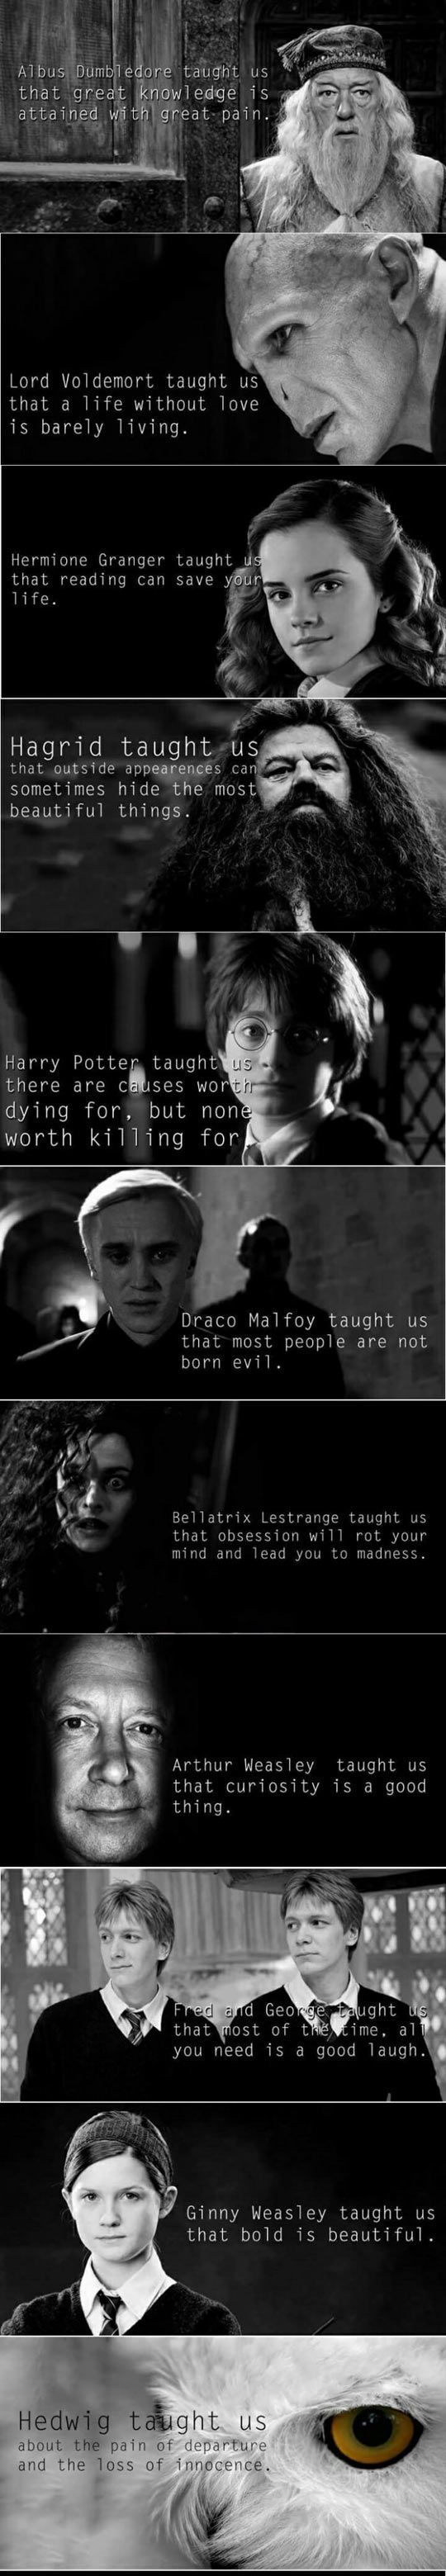 """The Moral Of Harry Potter --> Open to see all. The only one I disagree with is Lupin. It should read """"Prejudice about something that is misunderstood will lead you nowhere, but kindness and compassion to everyone will create love."""":"""